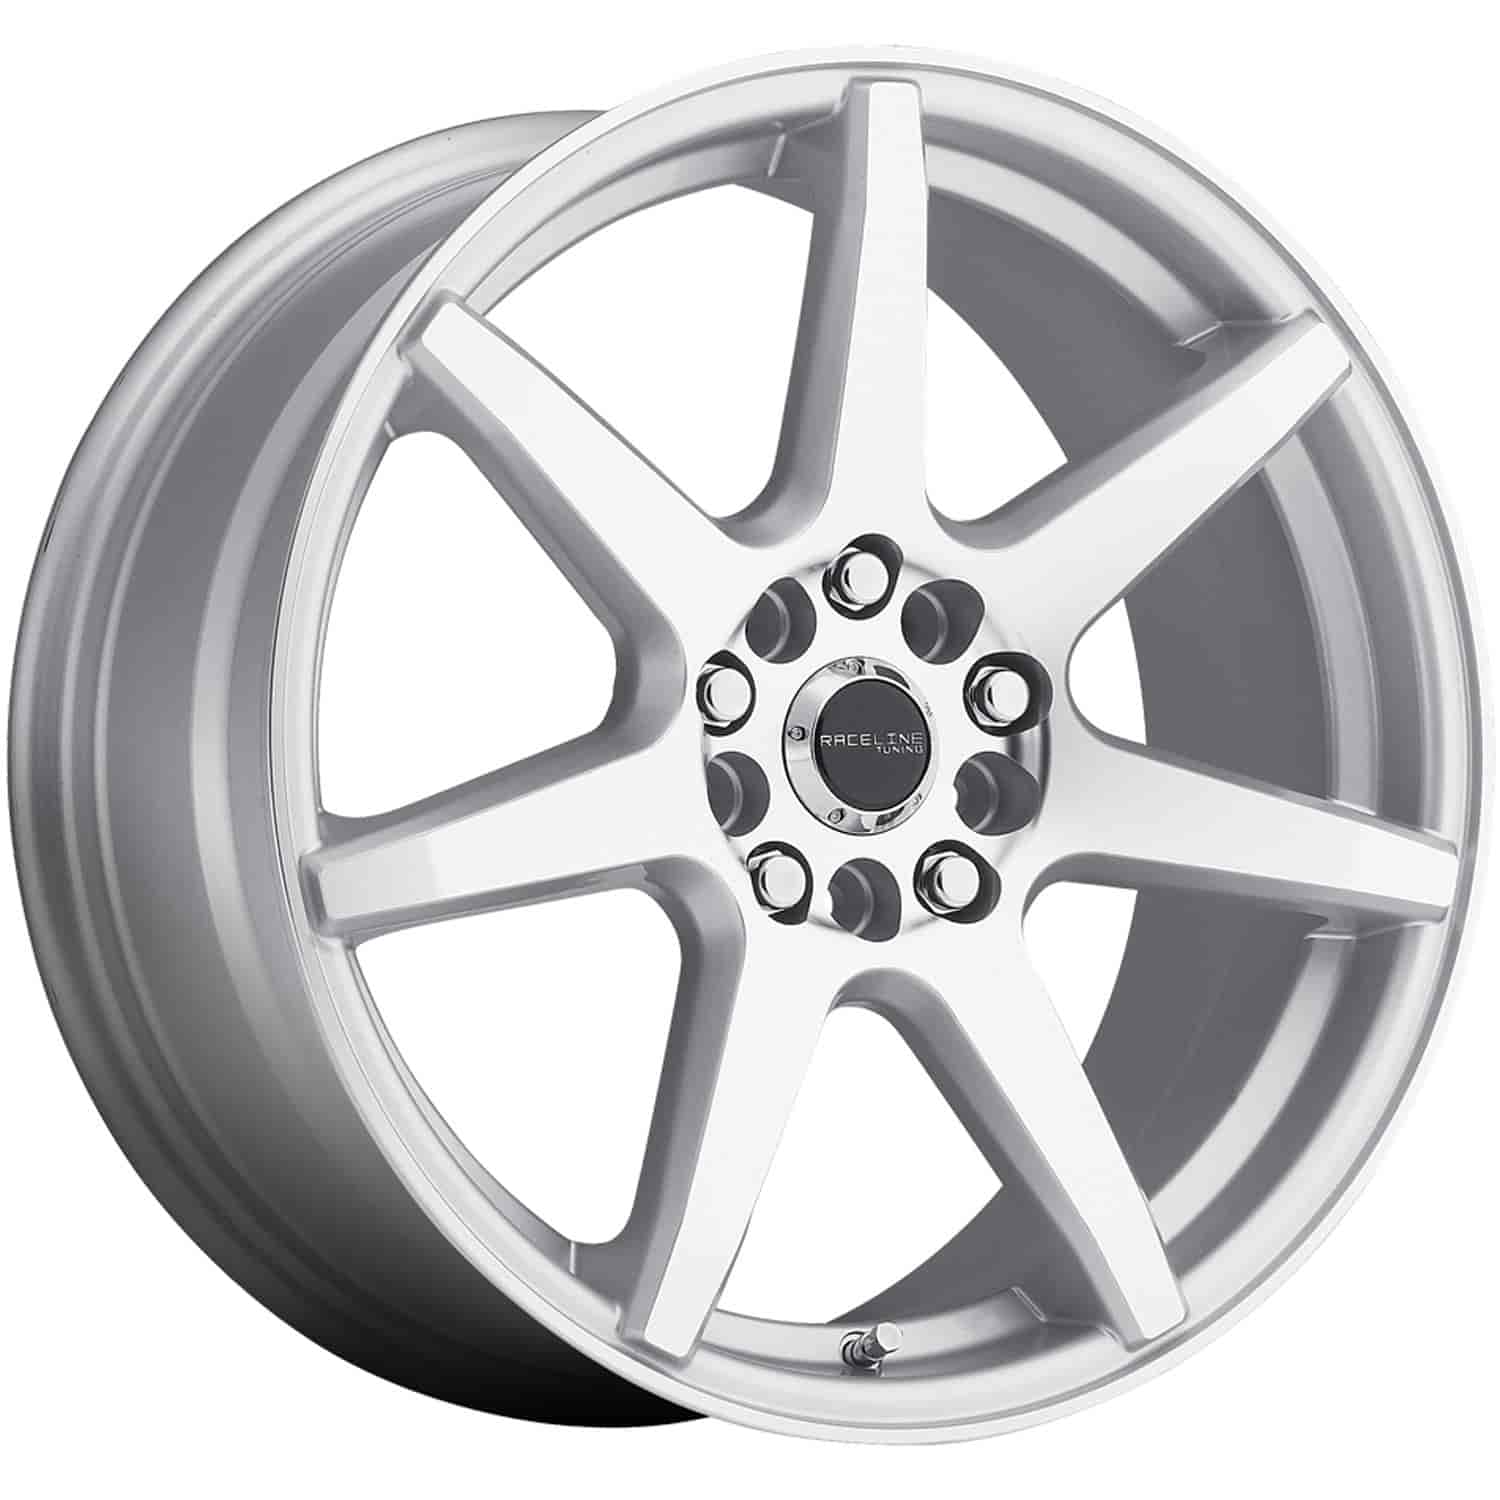 Raceline Wheels 131S8758842